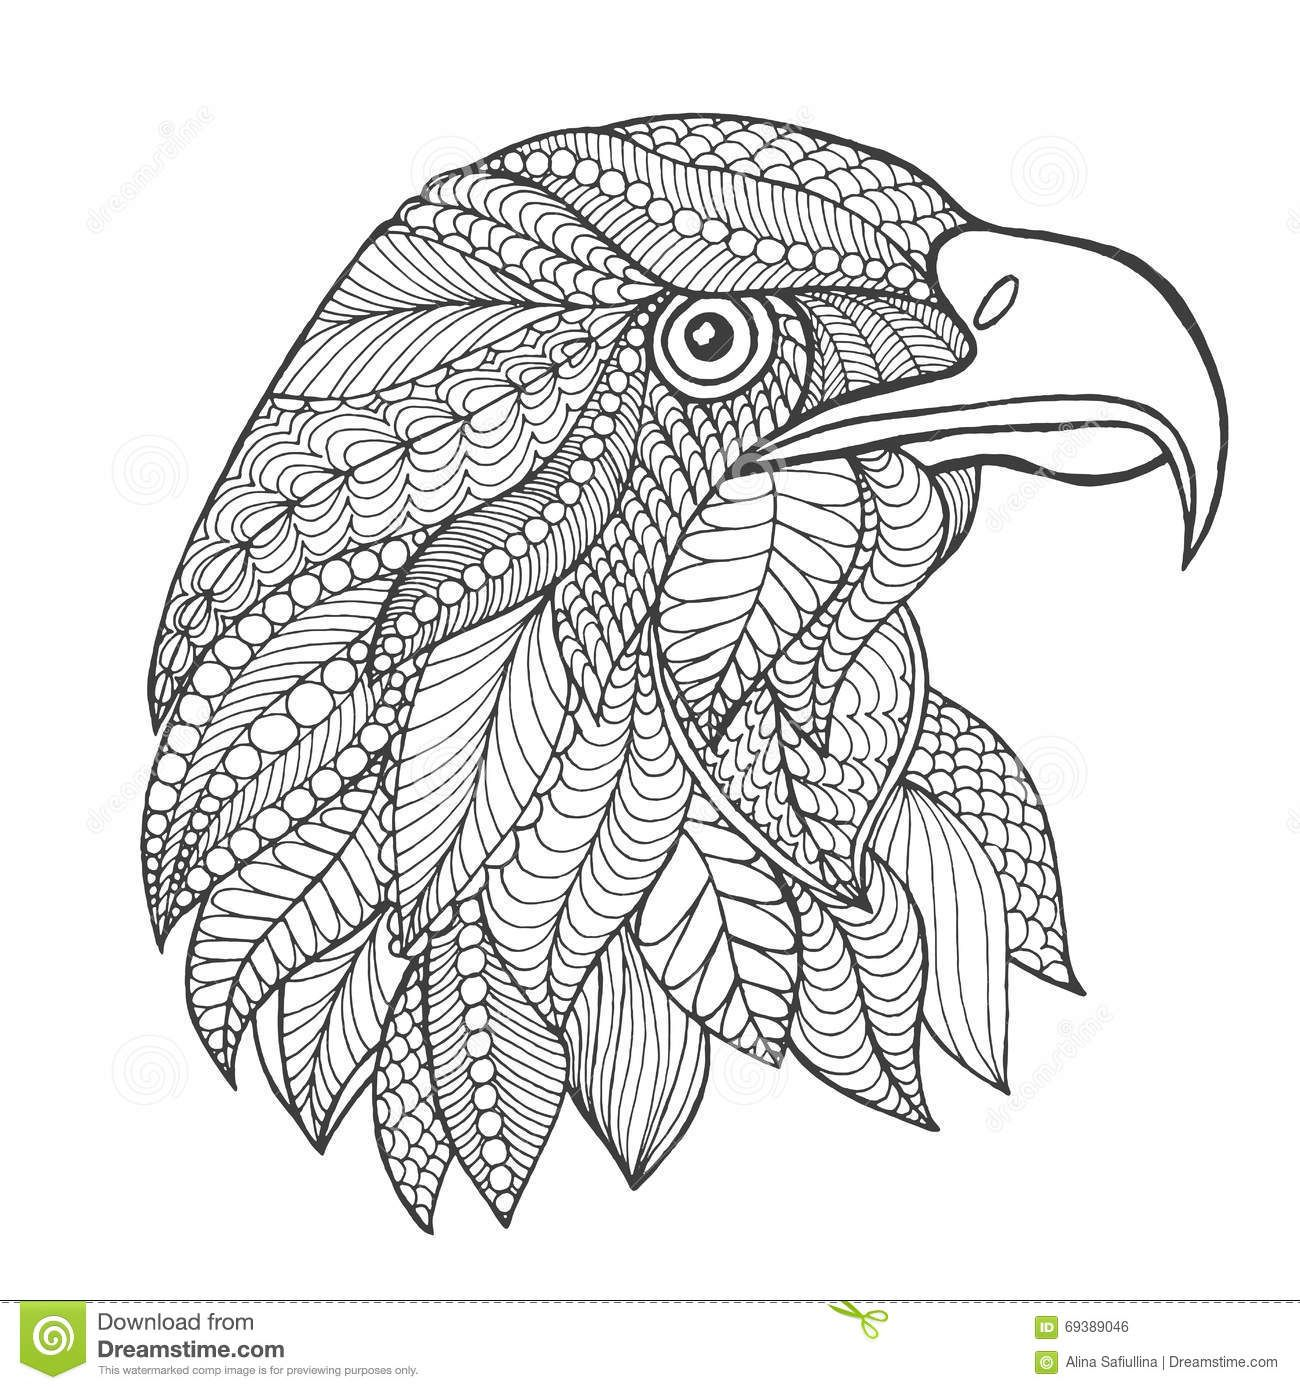 Eagles Mandala Coloring Pages Eagles Best Free Coloring